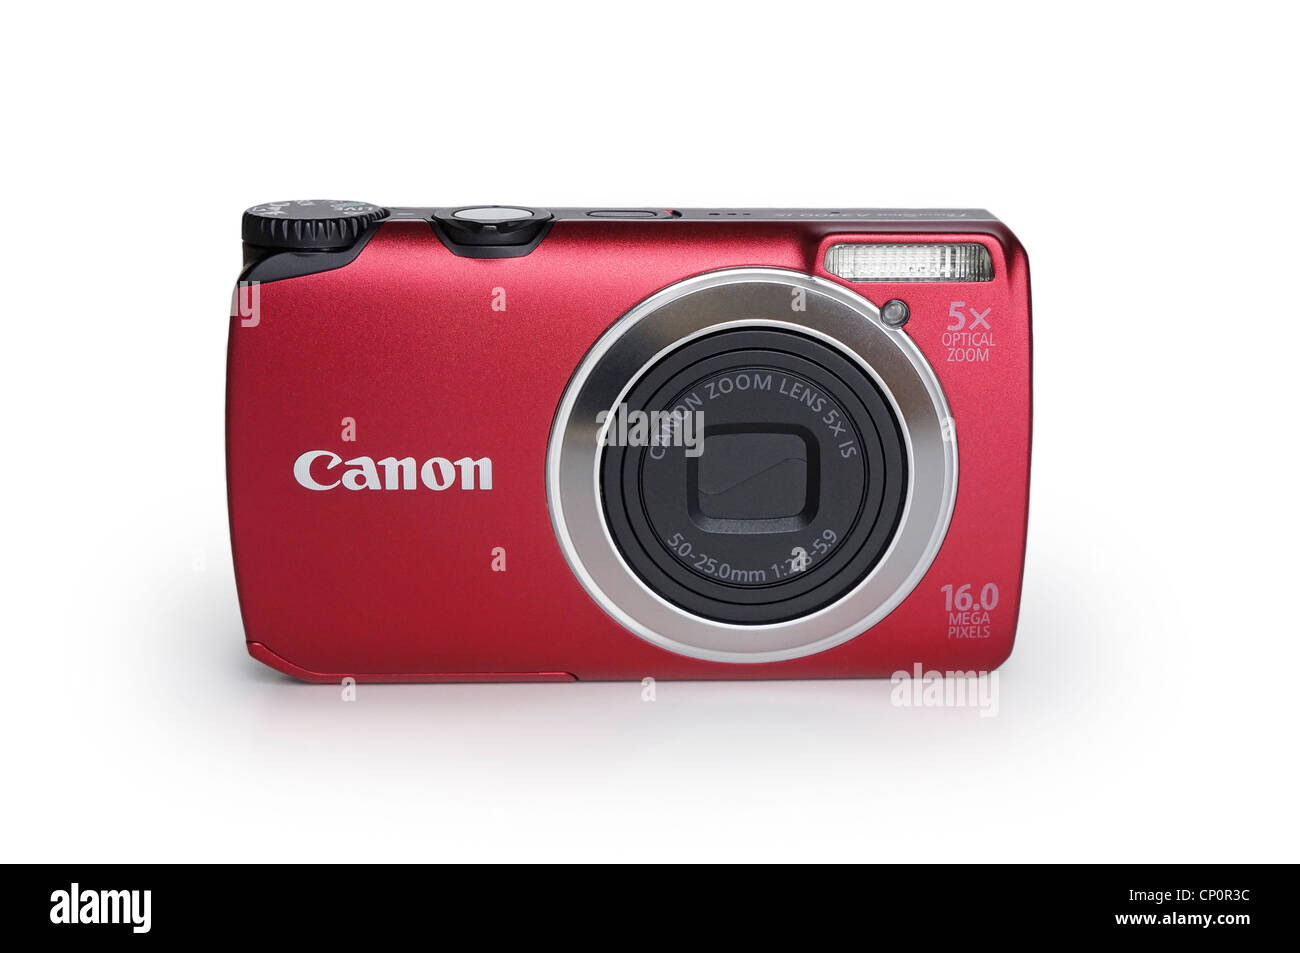 Camera, Digital Point and Shoot Compact - Stock Image